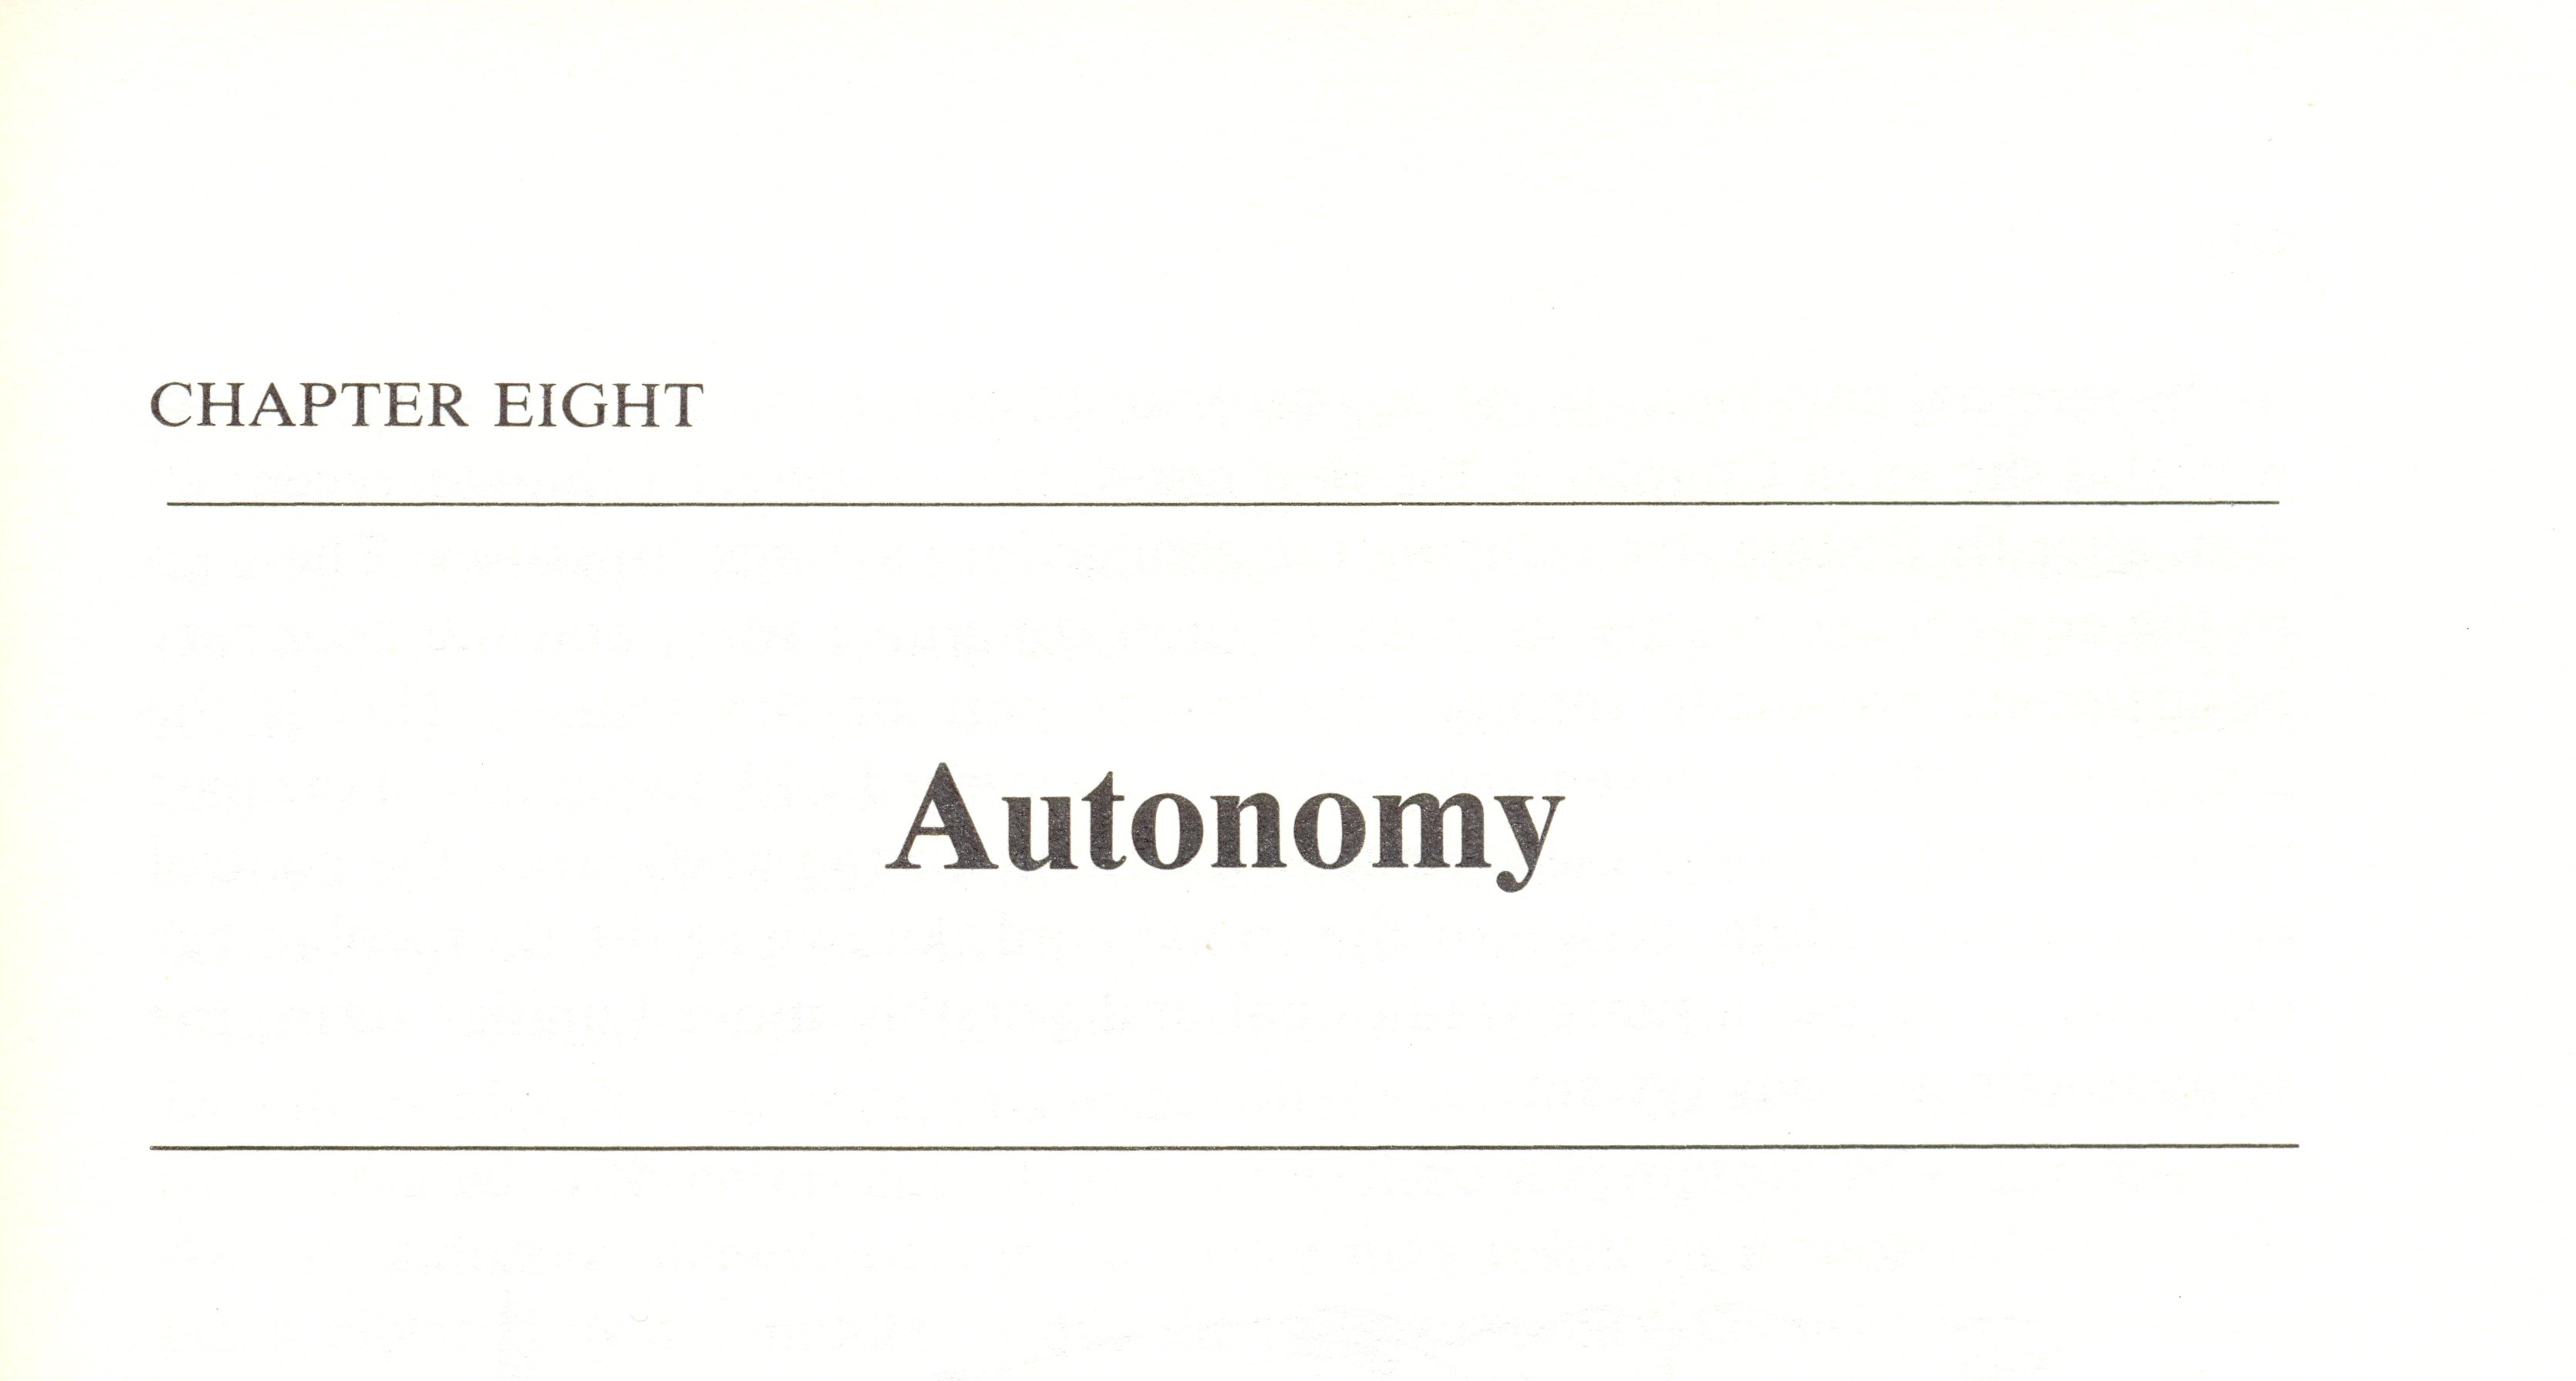 Autonomy (chapter title)